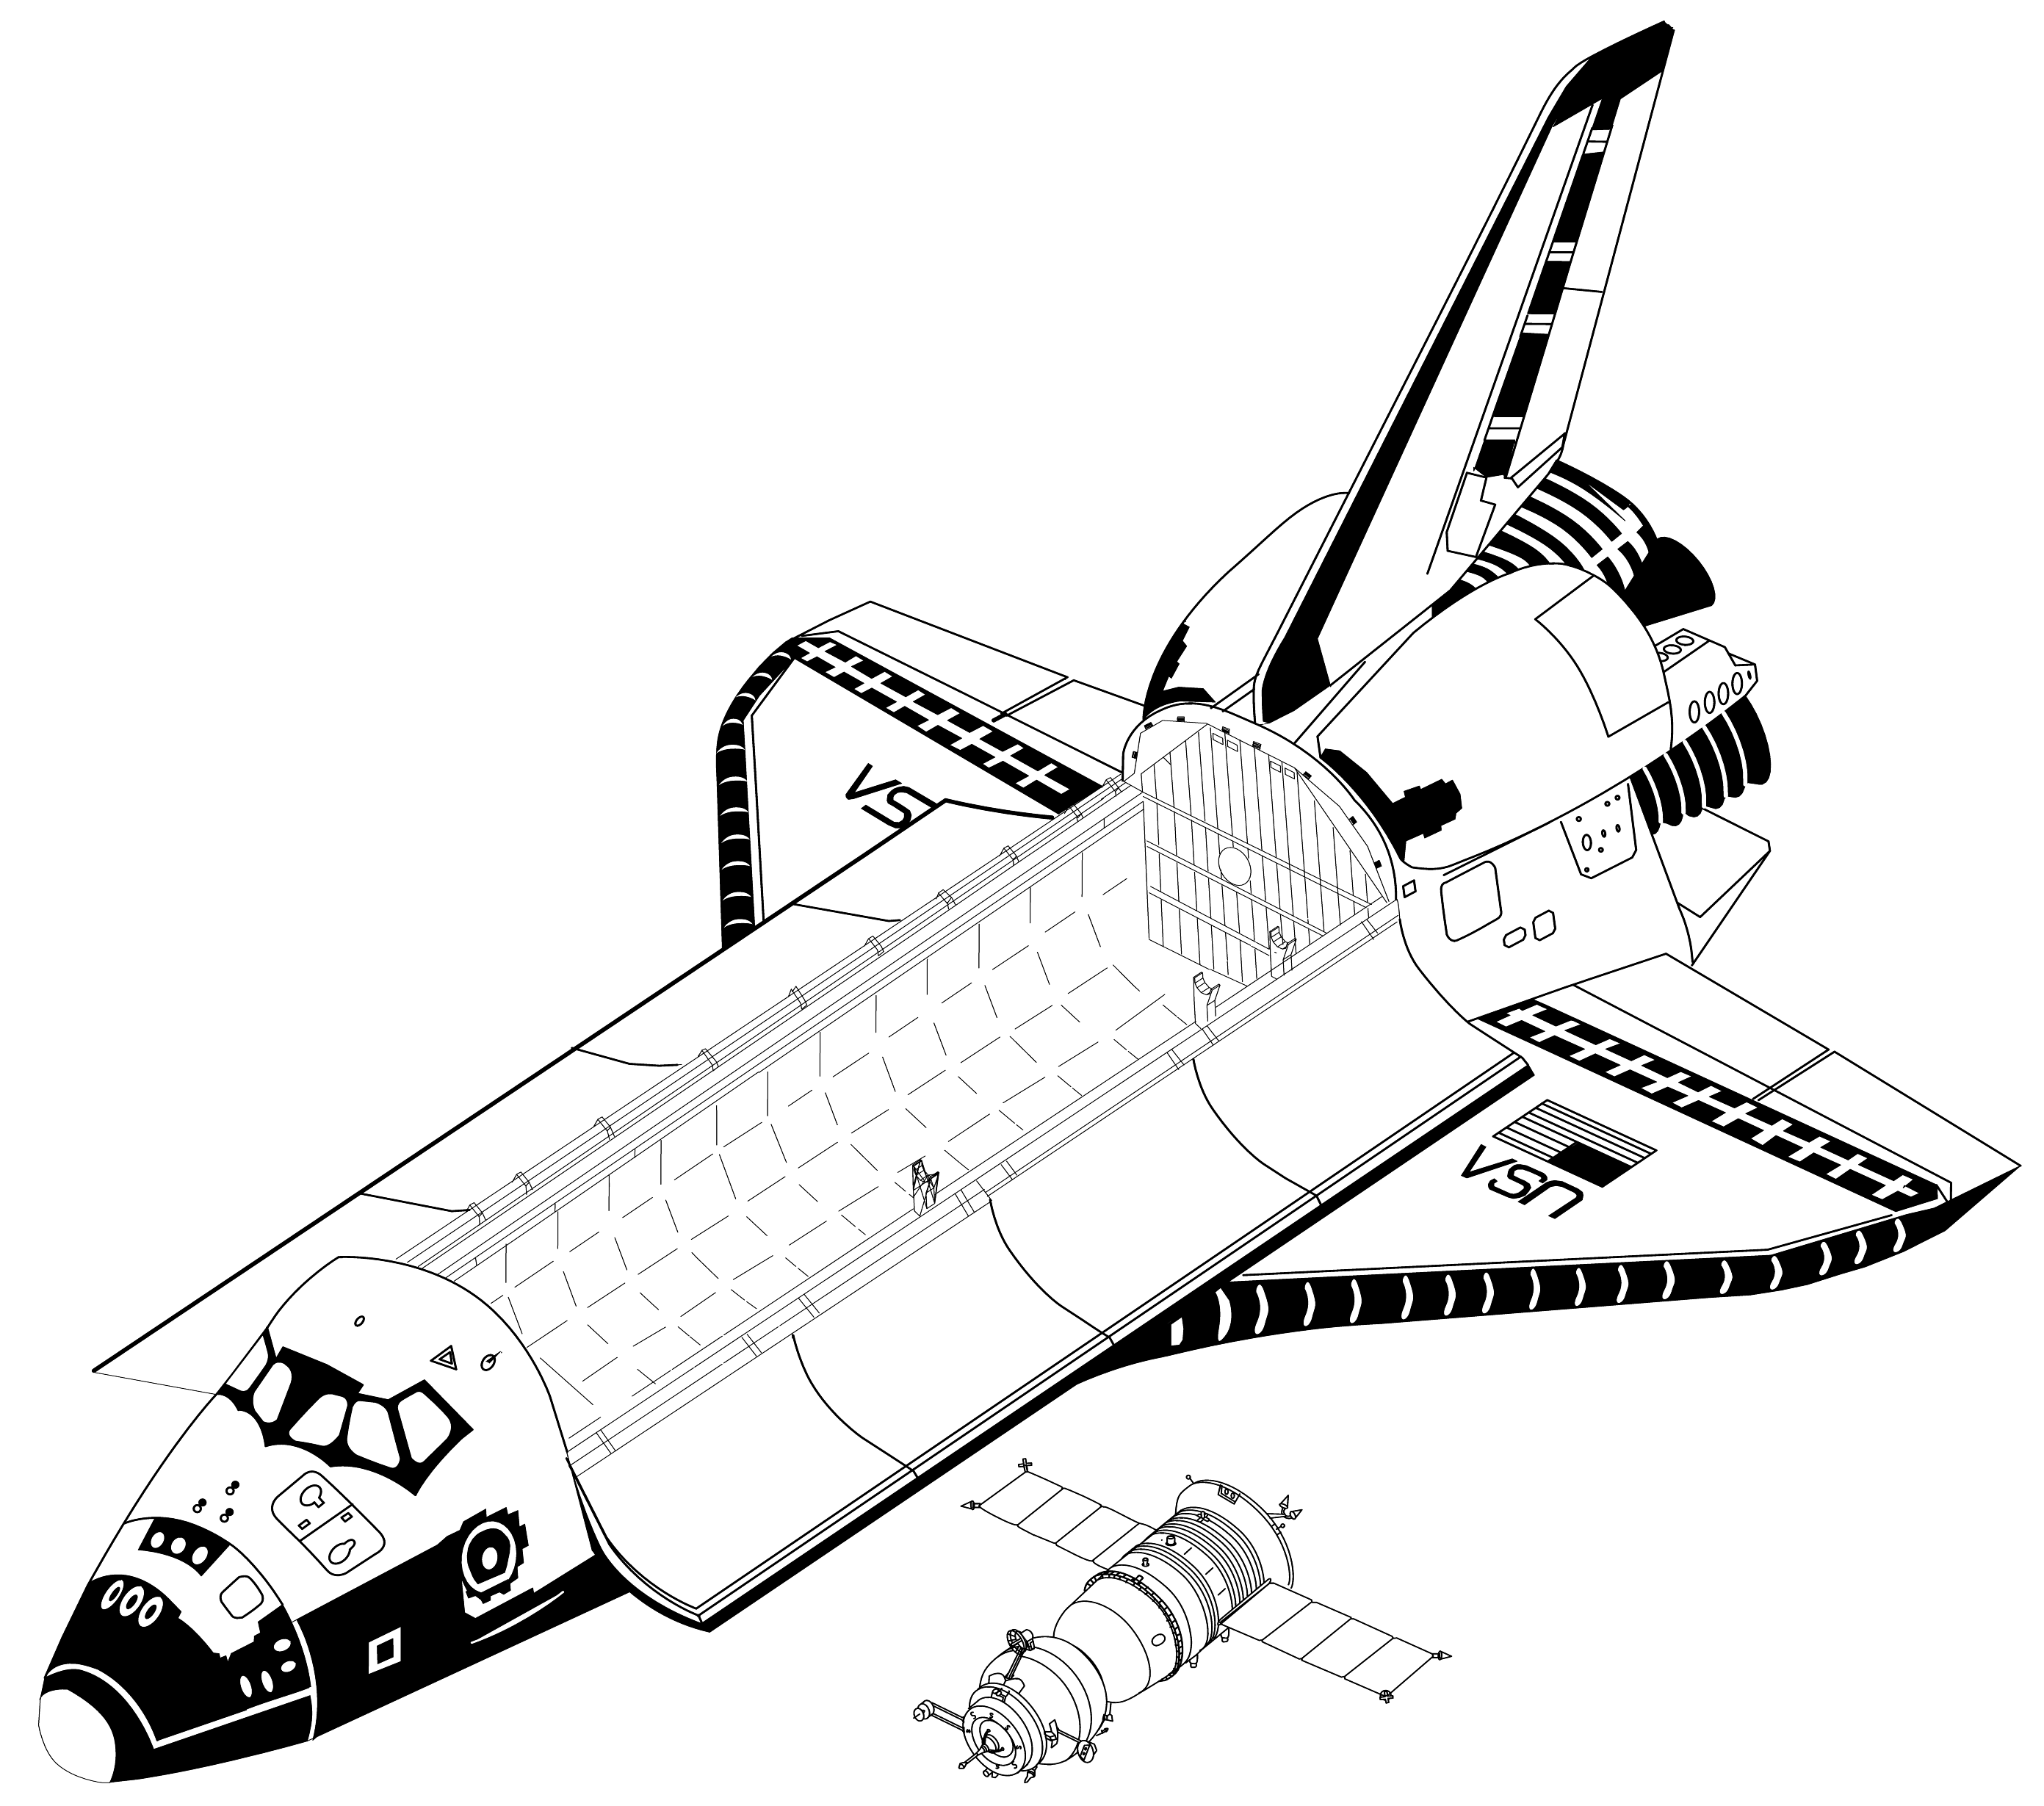 Challenger Space Shuttle Schematics